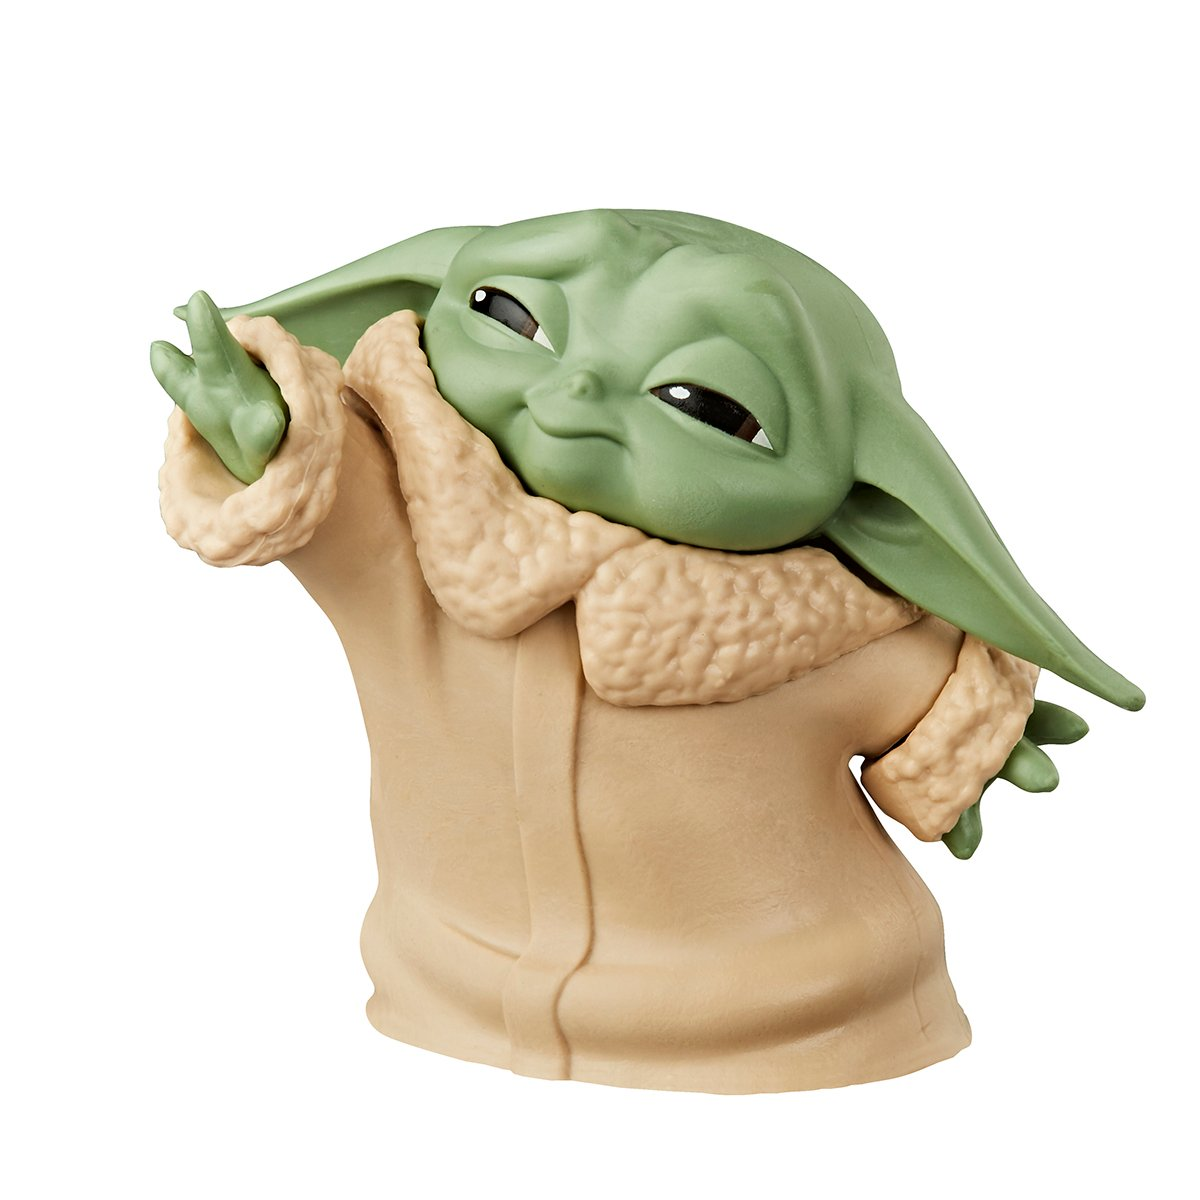 Figurina Star Wars Baby Yoda, Force Moment, F12175l00, 6 cm